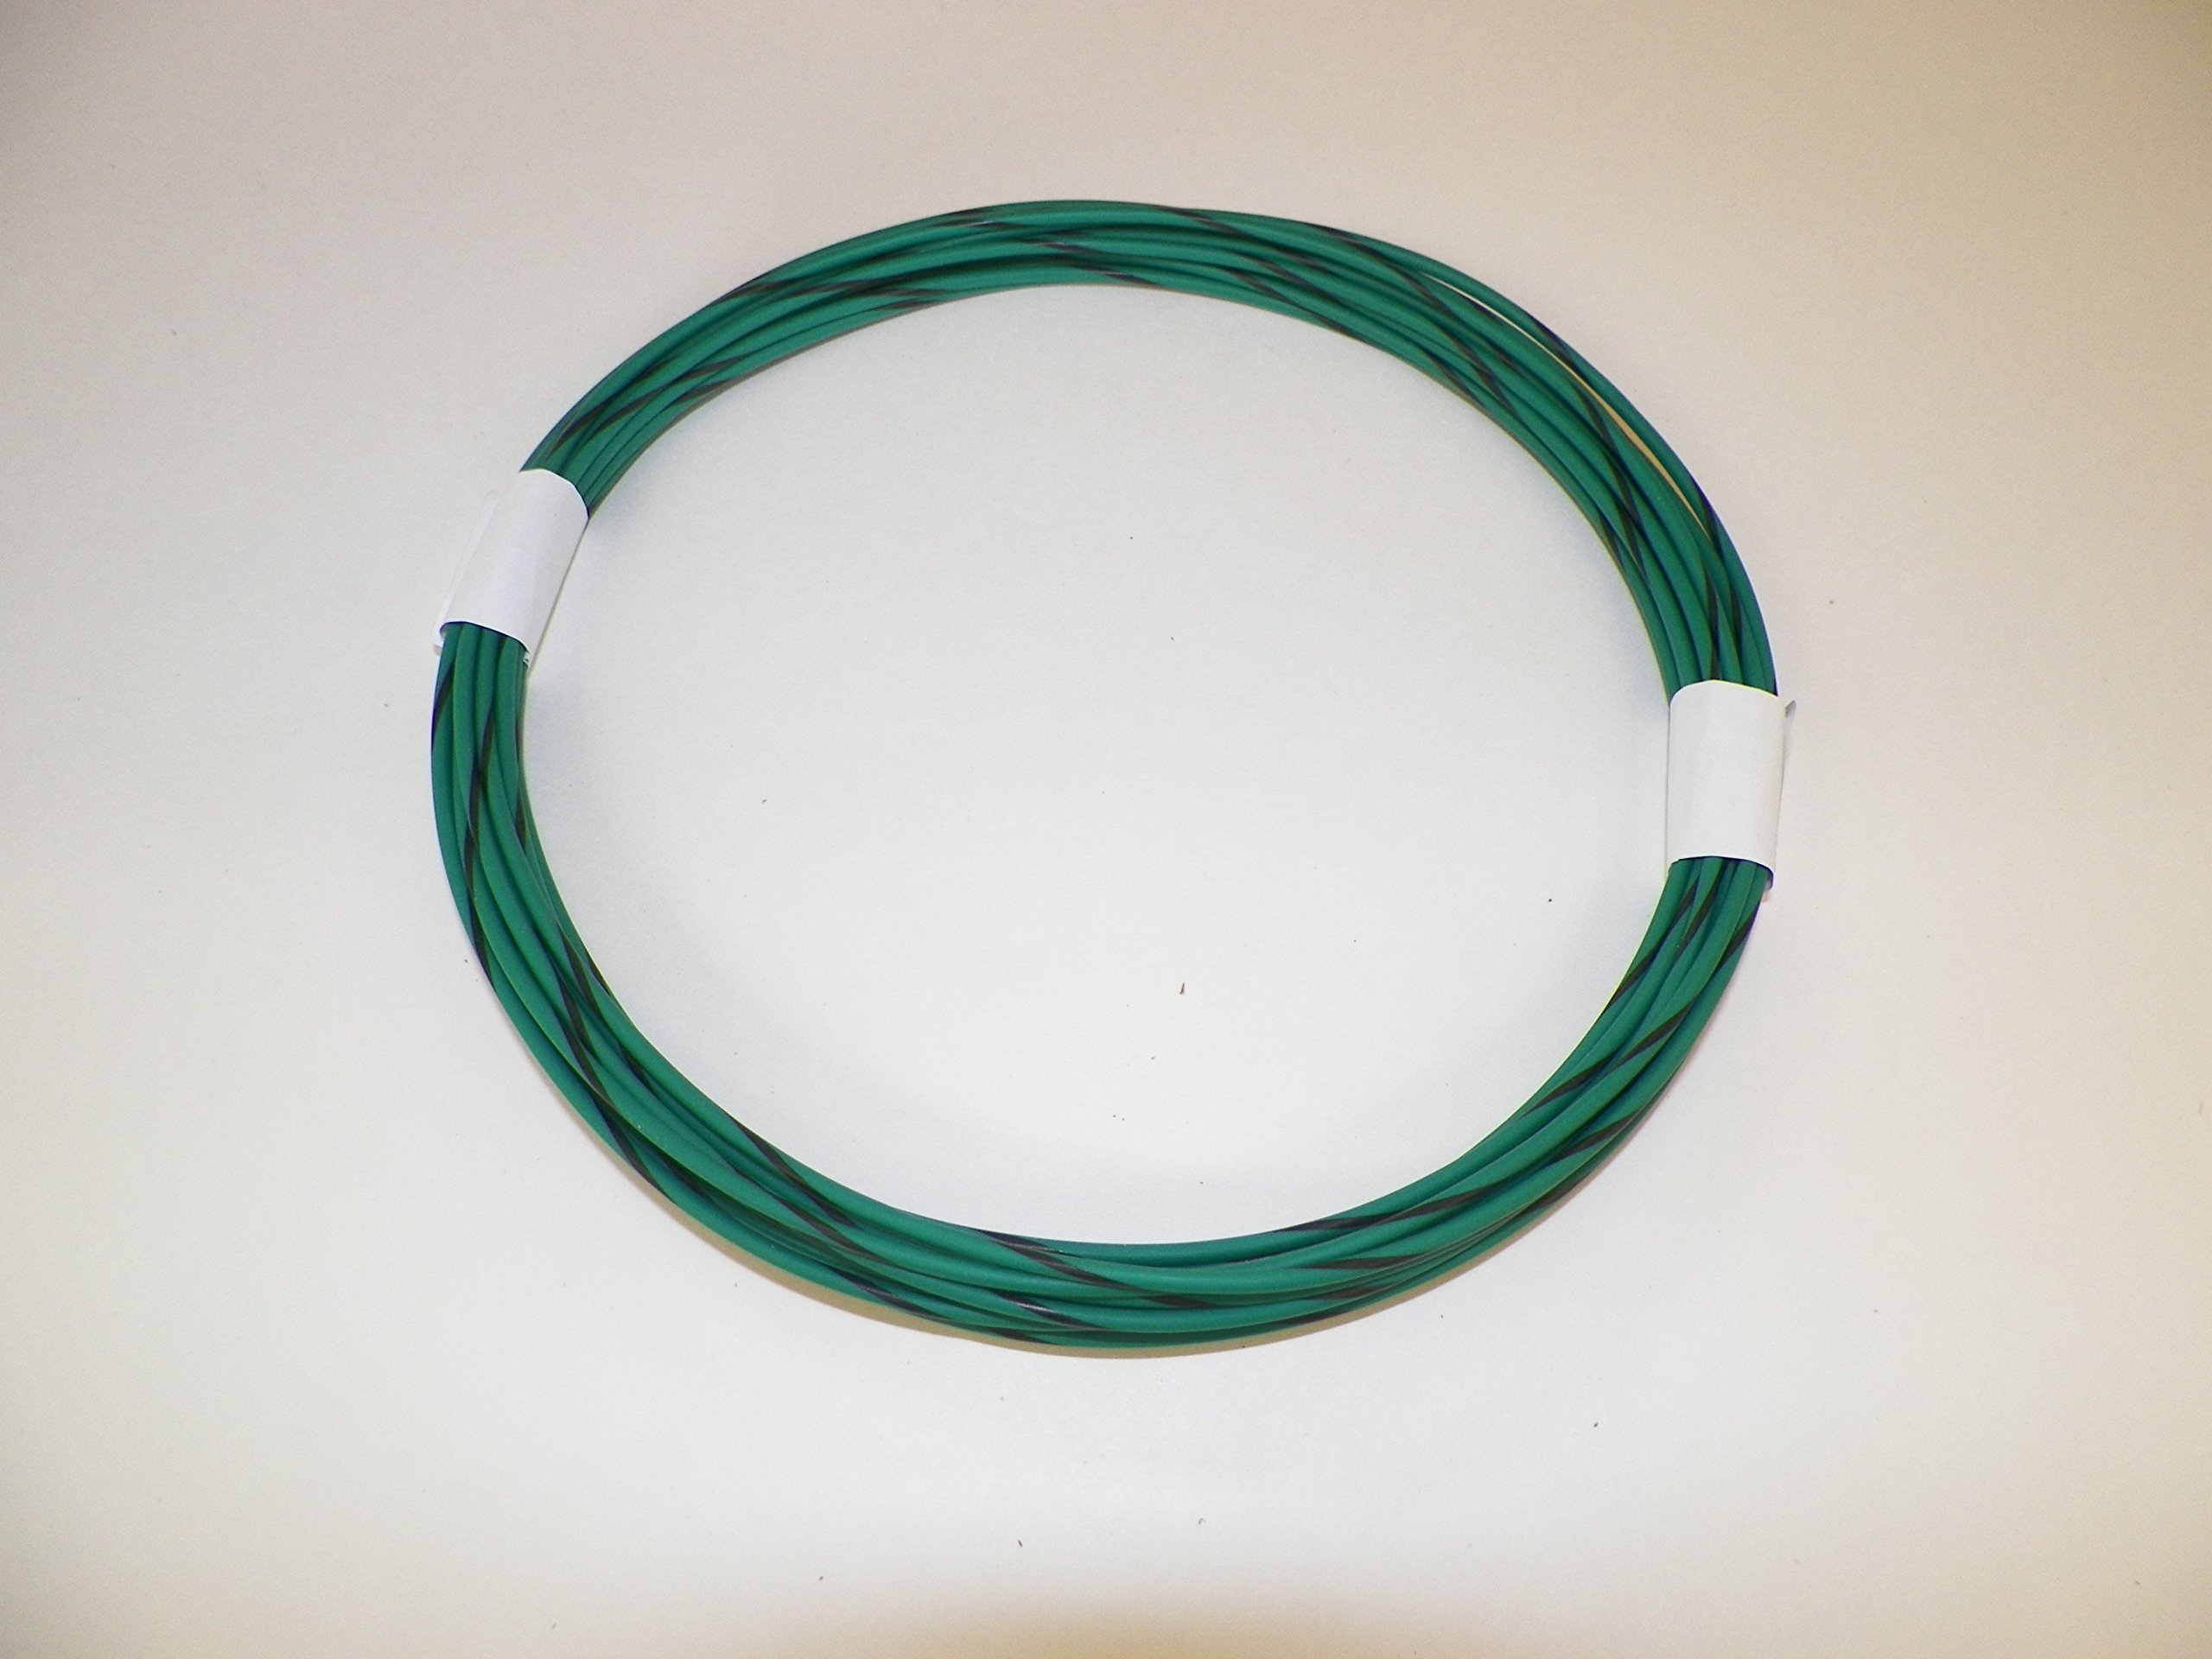 18 Ga Awg green/black Striped Automotive Truck Motorcycle General Purpose GXL Wire .94 O.D. 25' Superior Abrasion Resistance, High Heat, Resist grease,Oil, Gasoline,Acids